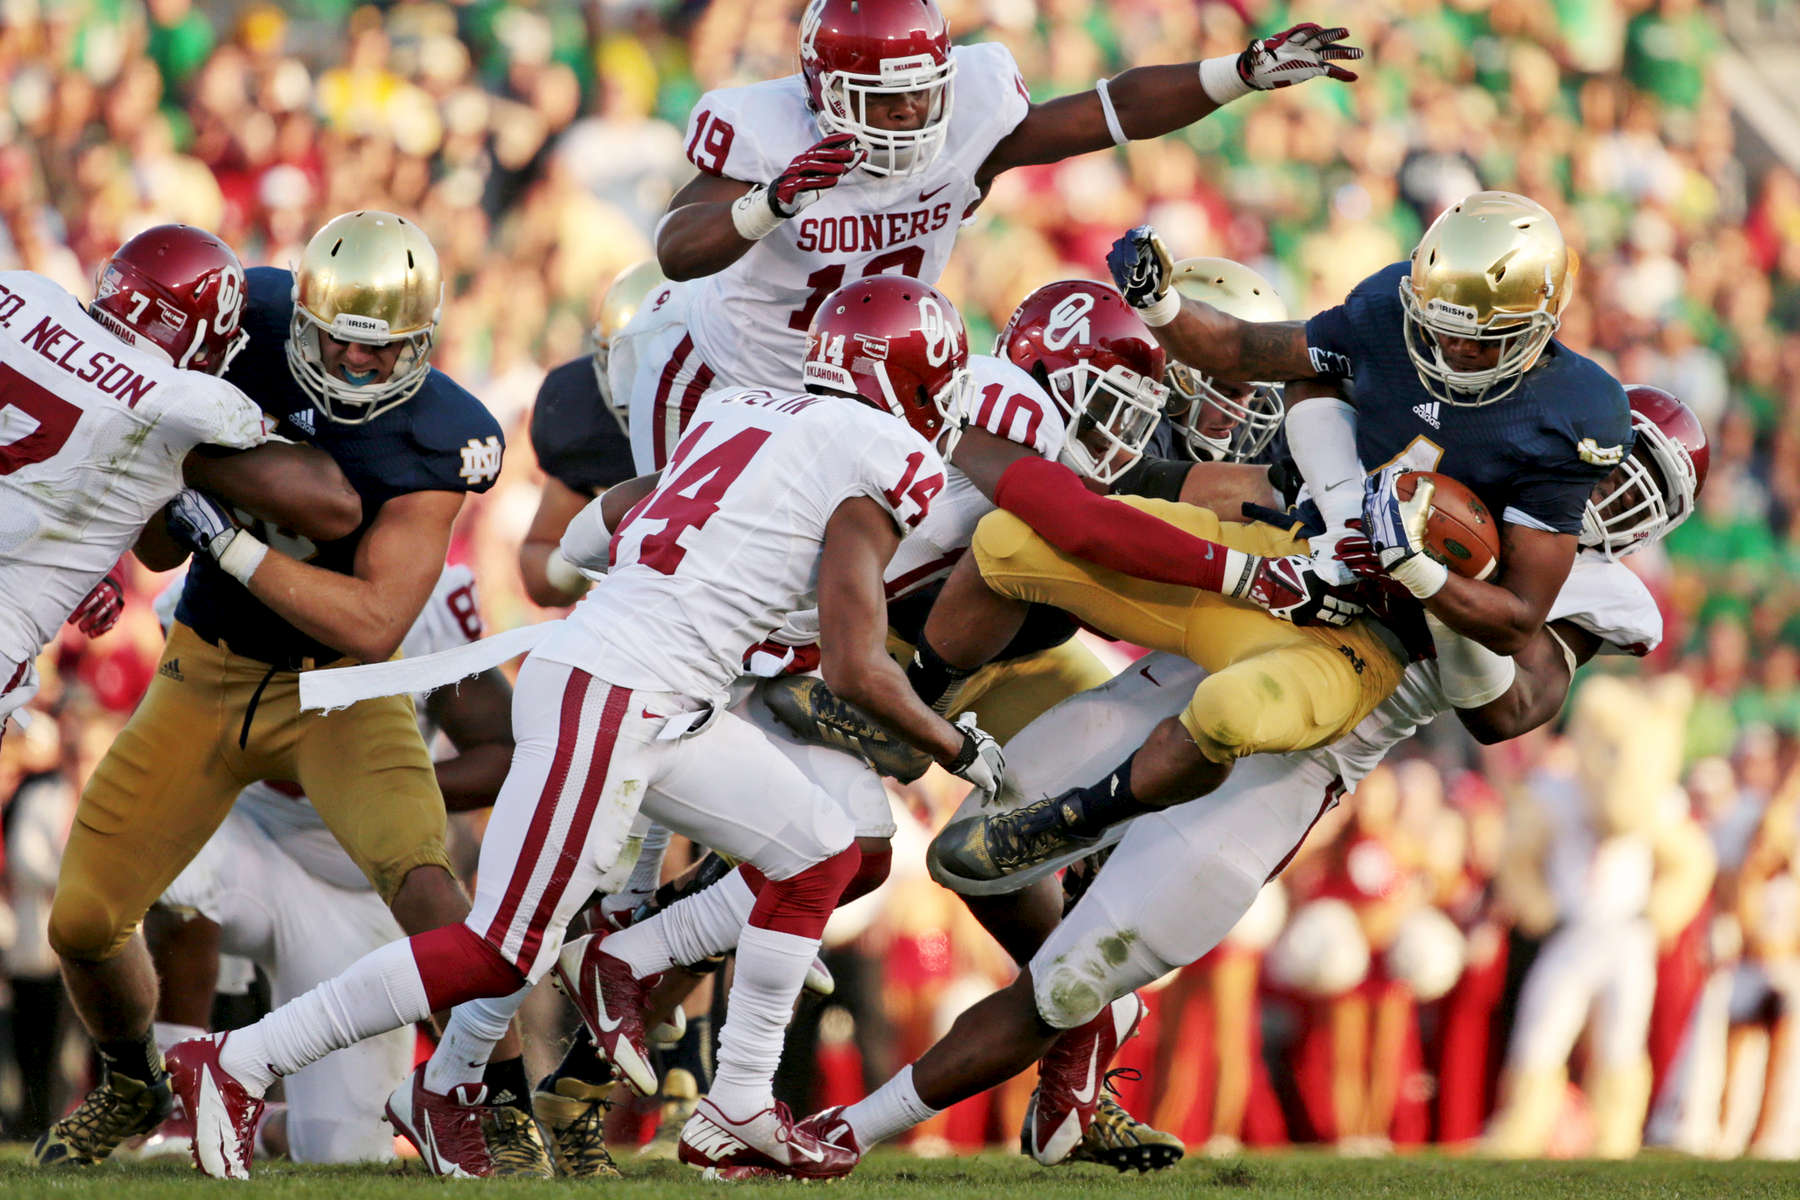 Notre Dame Fighting Irish running back George Atkinson III is pulled down by Oklahoma Sooners defensive end Geneo Grissom as he ran the ball during the second half of an NCAA football game between the Notre Dame Fighting Irish and the Oklahoma Sooners at Notre Dame Stadium in Notre Dame, Ind.